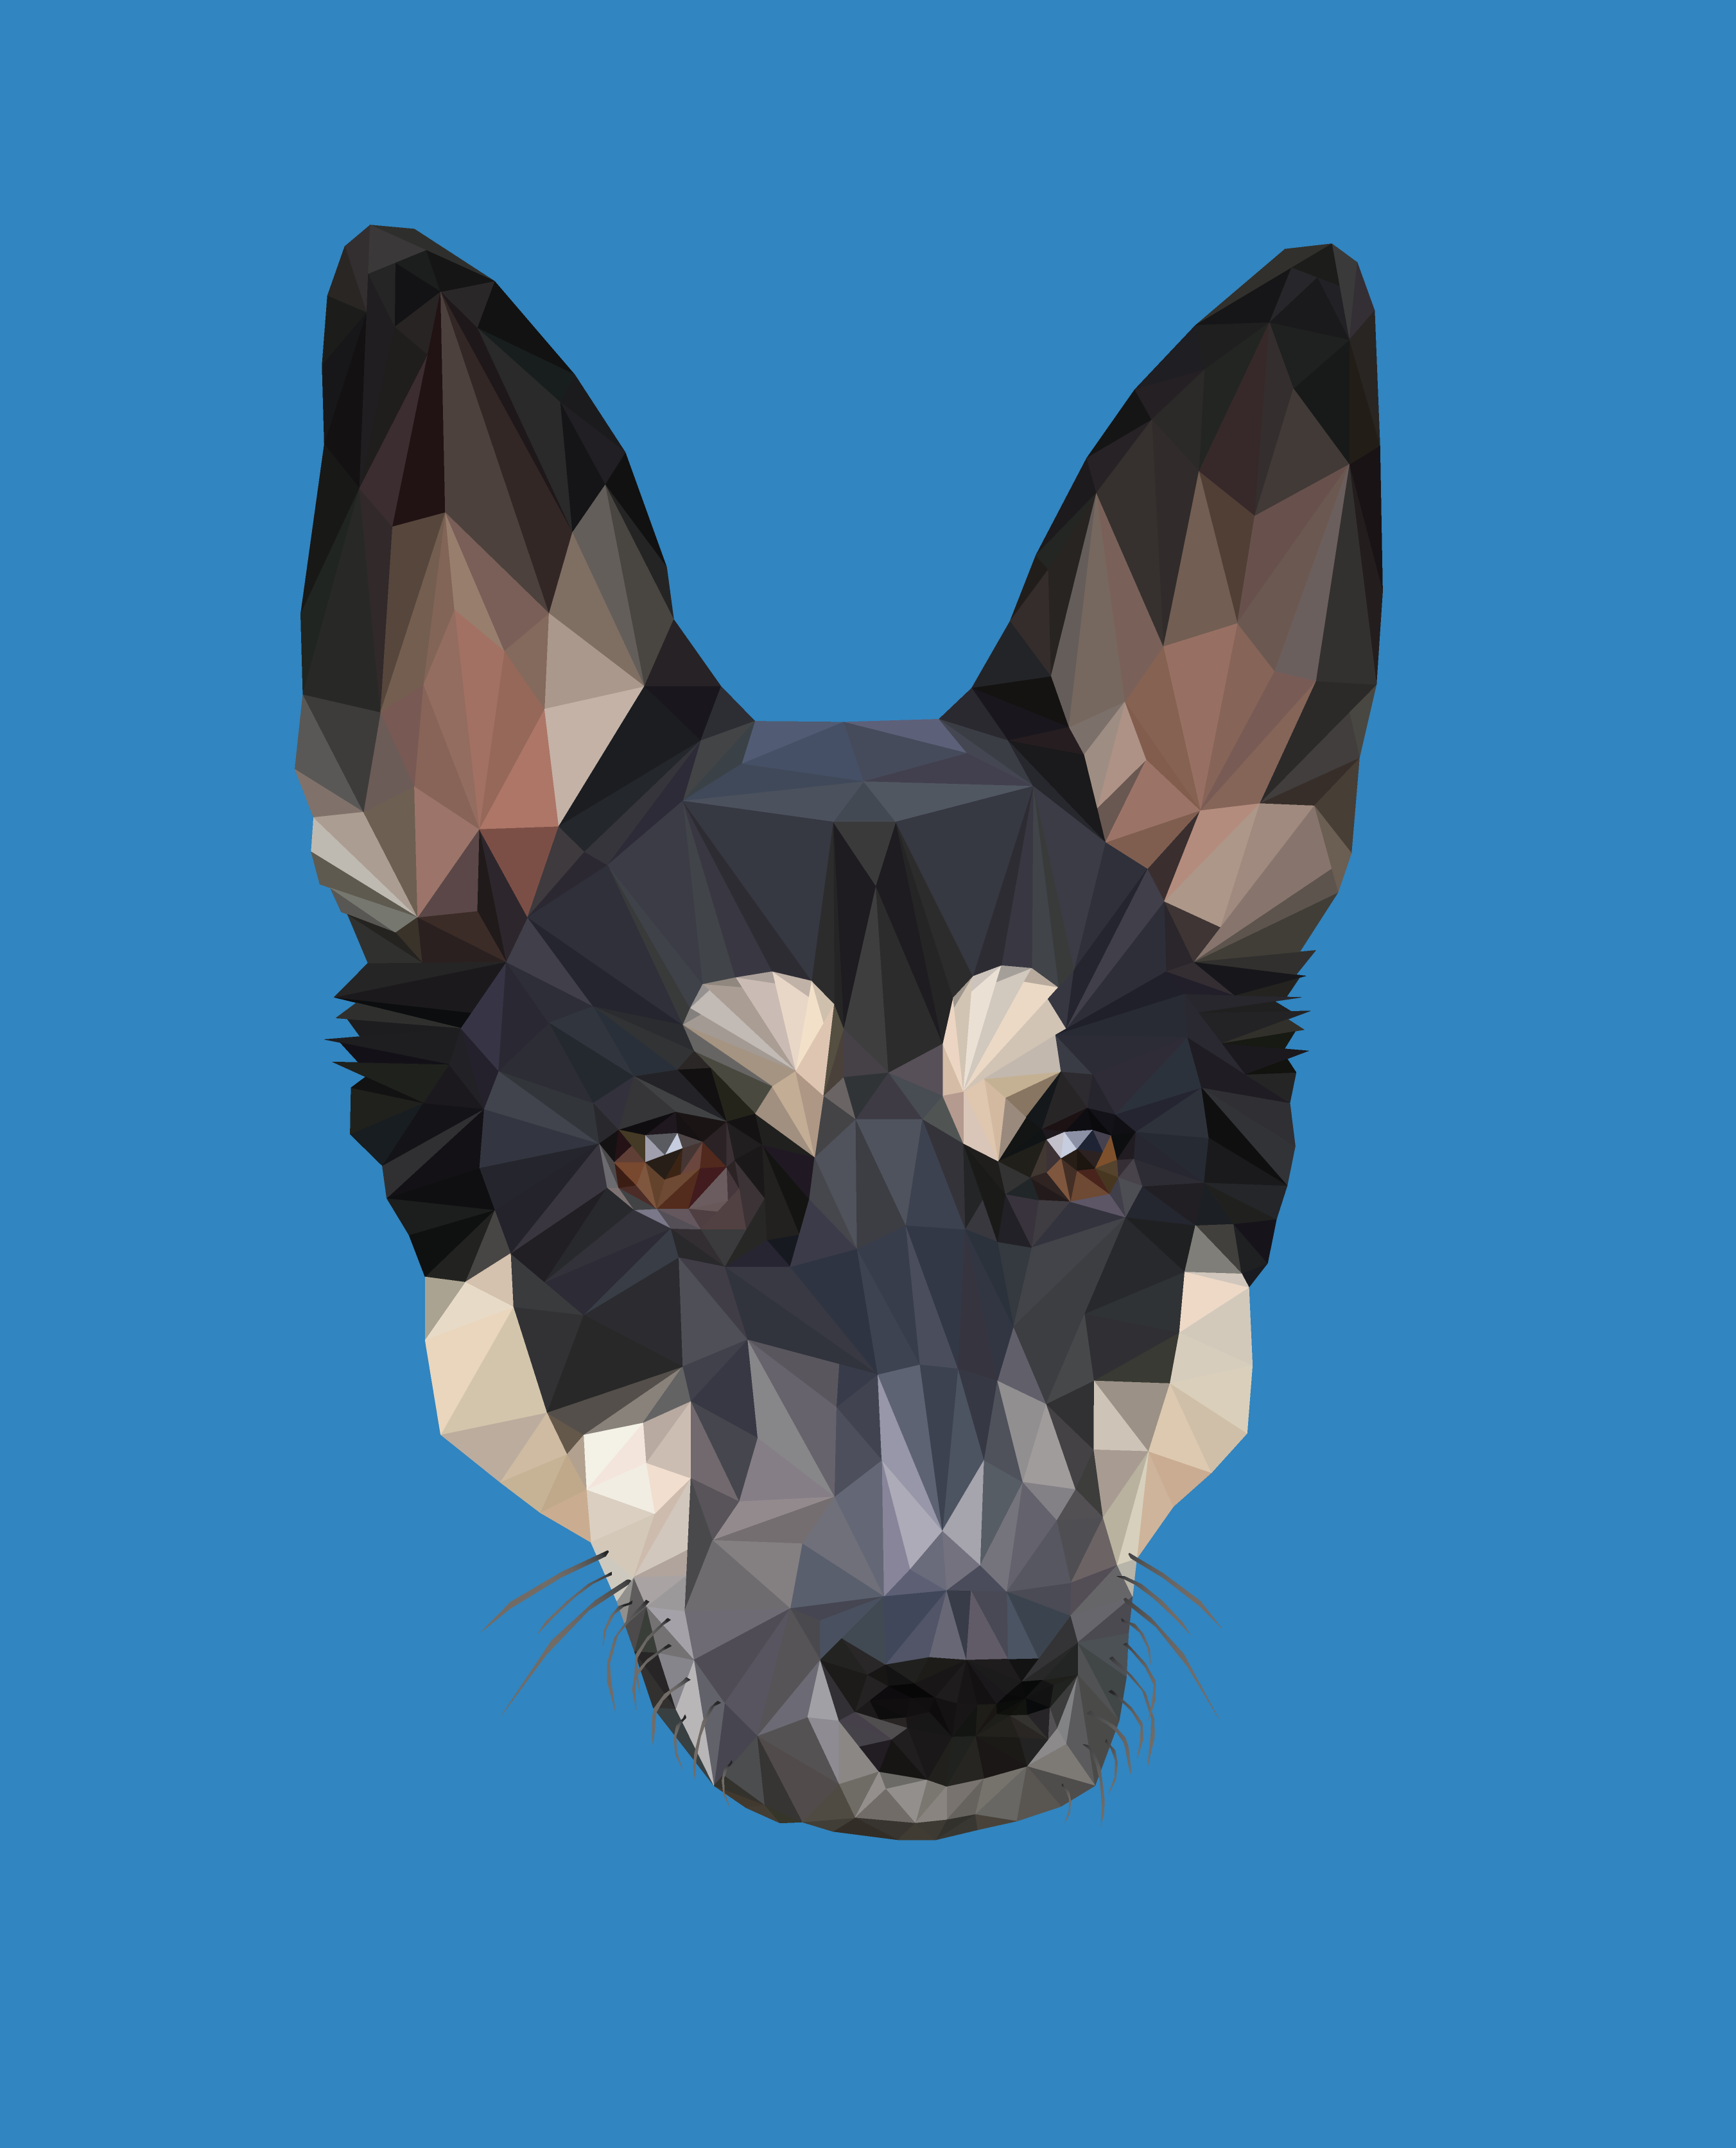 Low Poly Dog Illustration